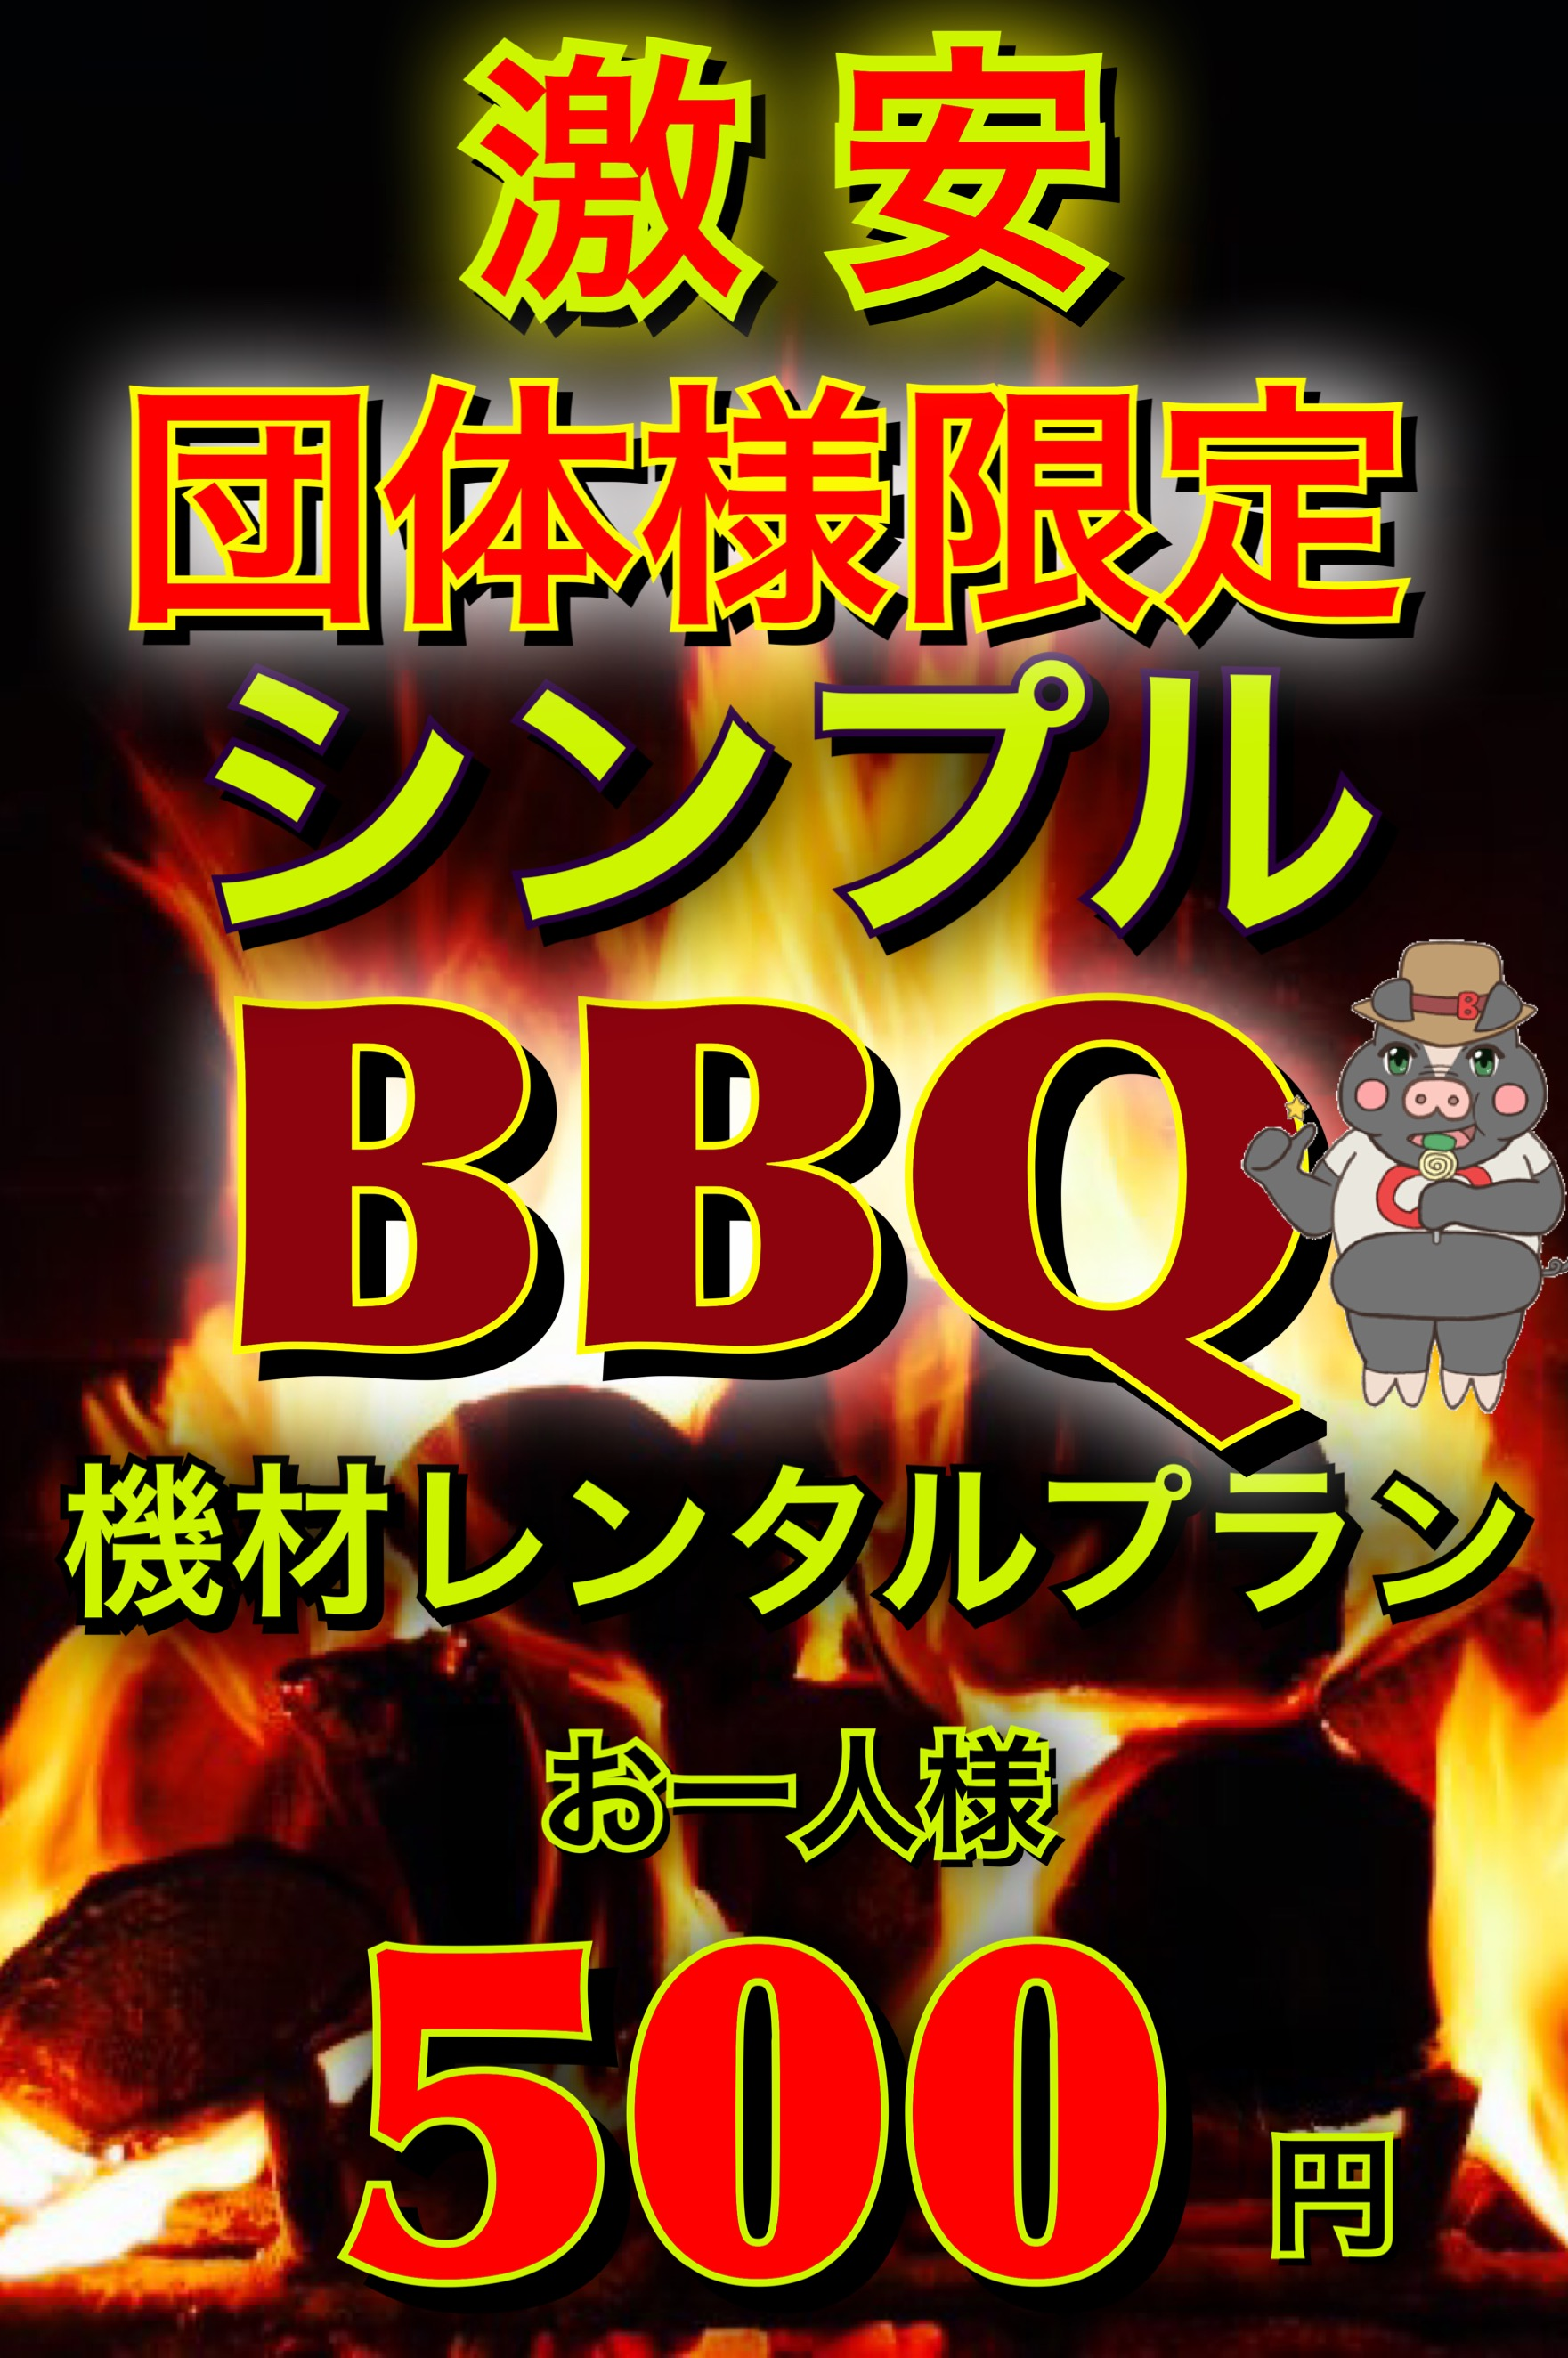 bbq レンタル東京